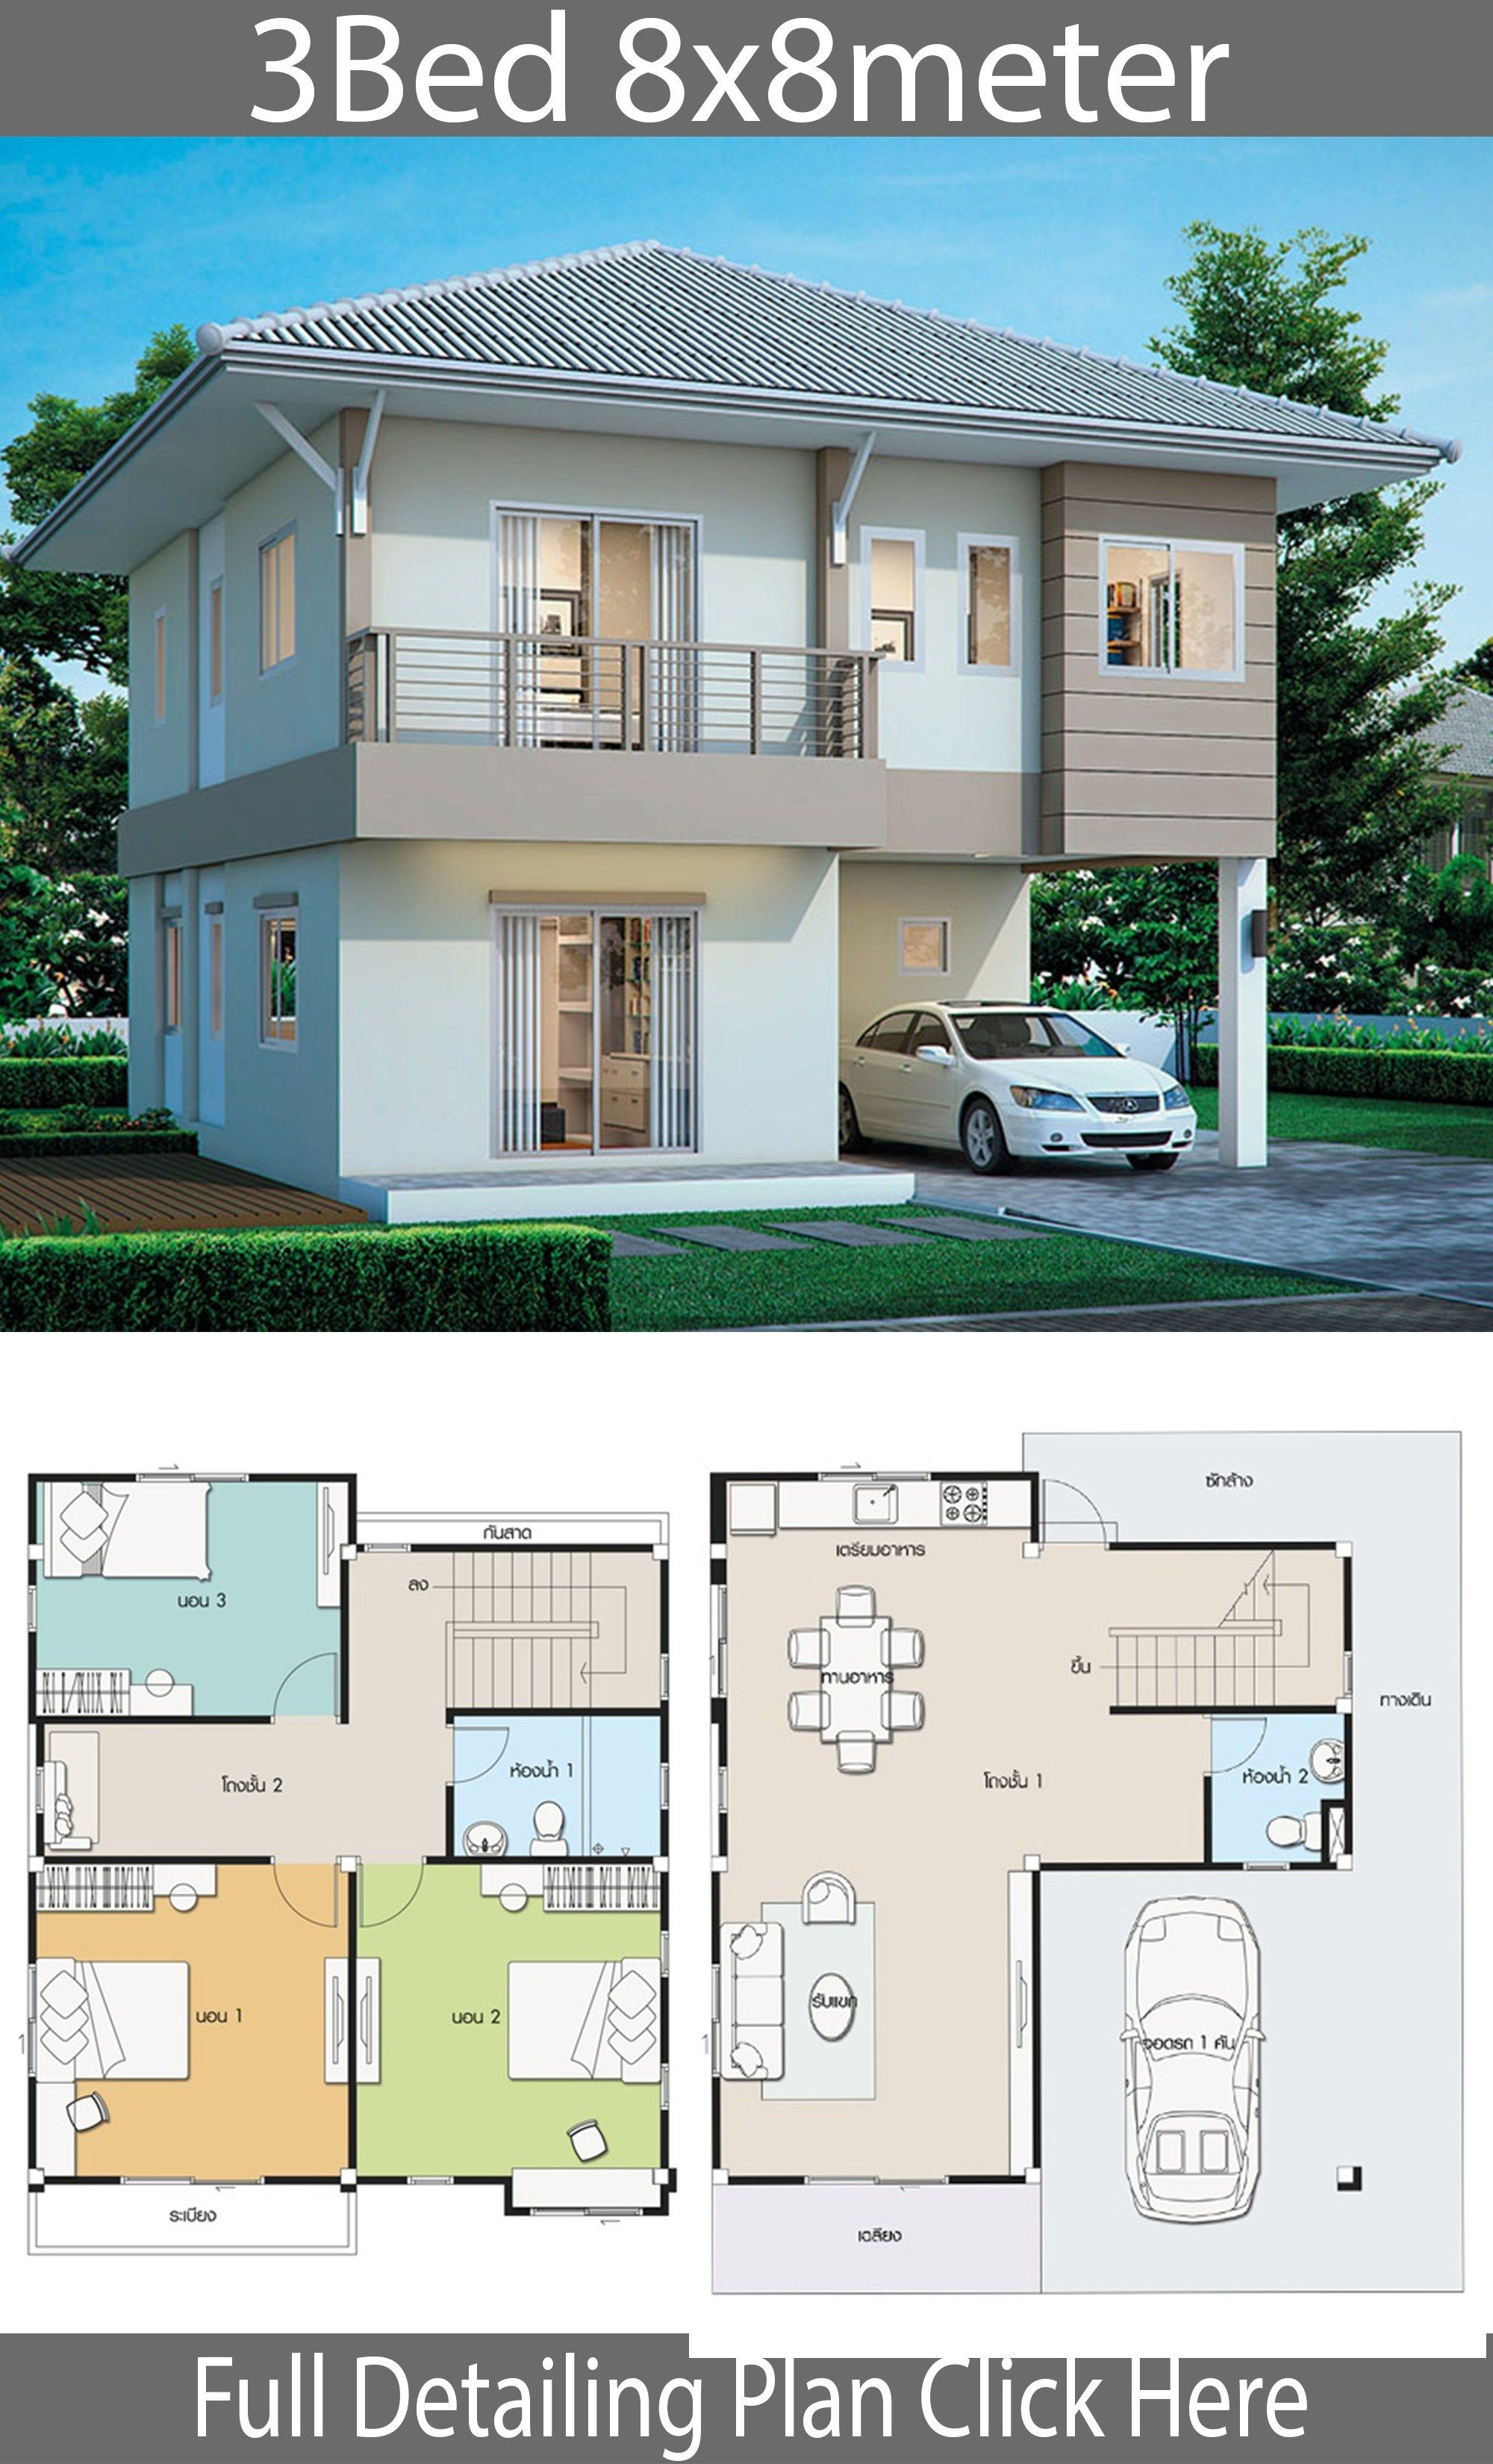 House Design Plan 8x8m With 3 Bedrooms Home Design With Plan Minimal House Design Duplex House Plans 2 Storey House Design